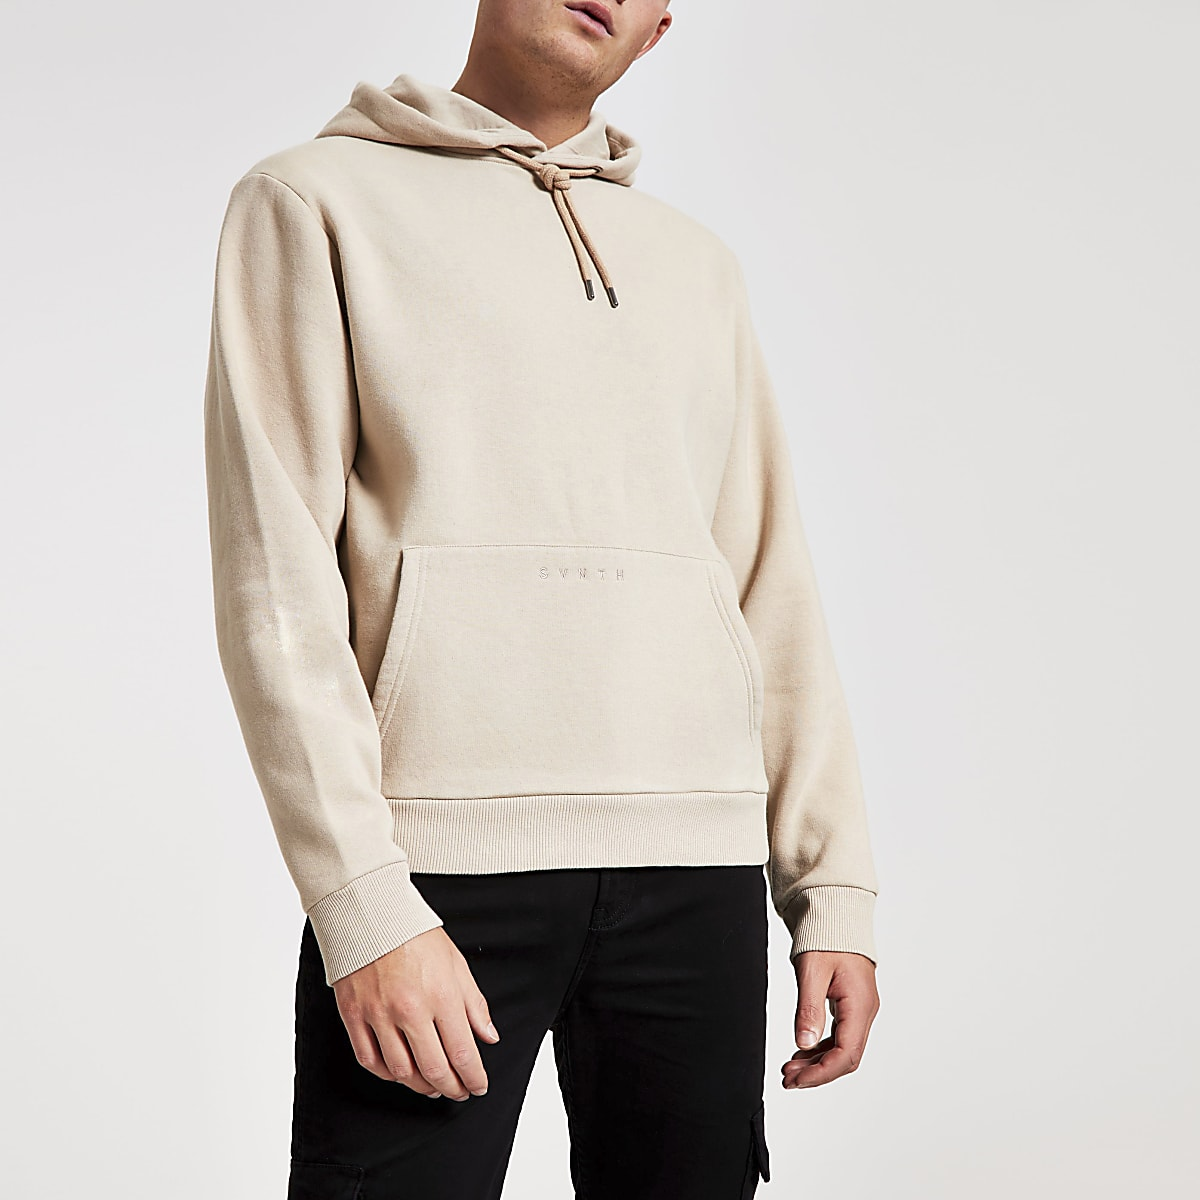 Stone Svnth embroidered hoodie